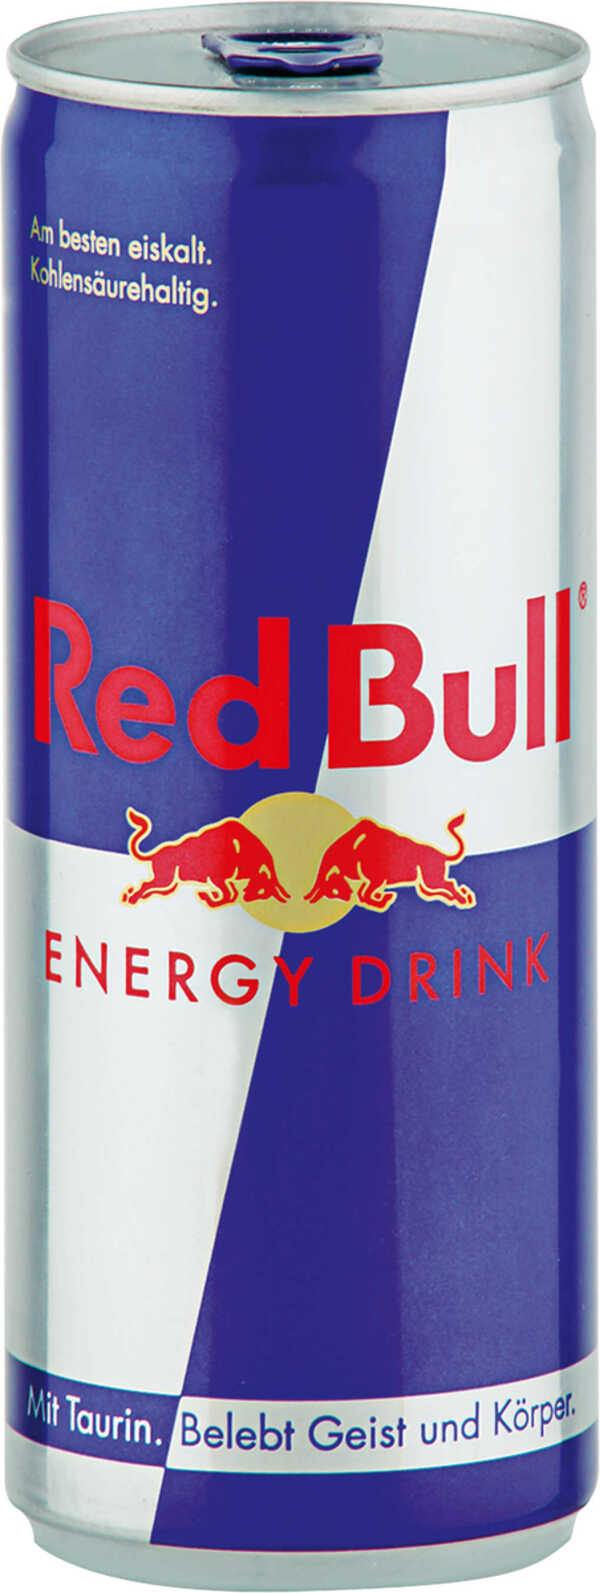 Was Ist Red Bull